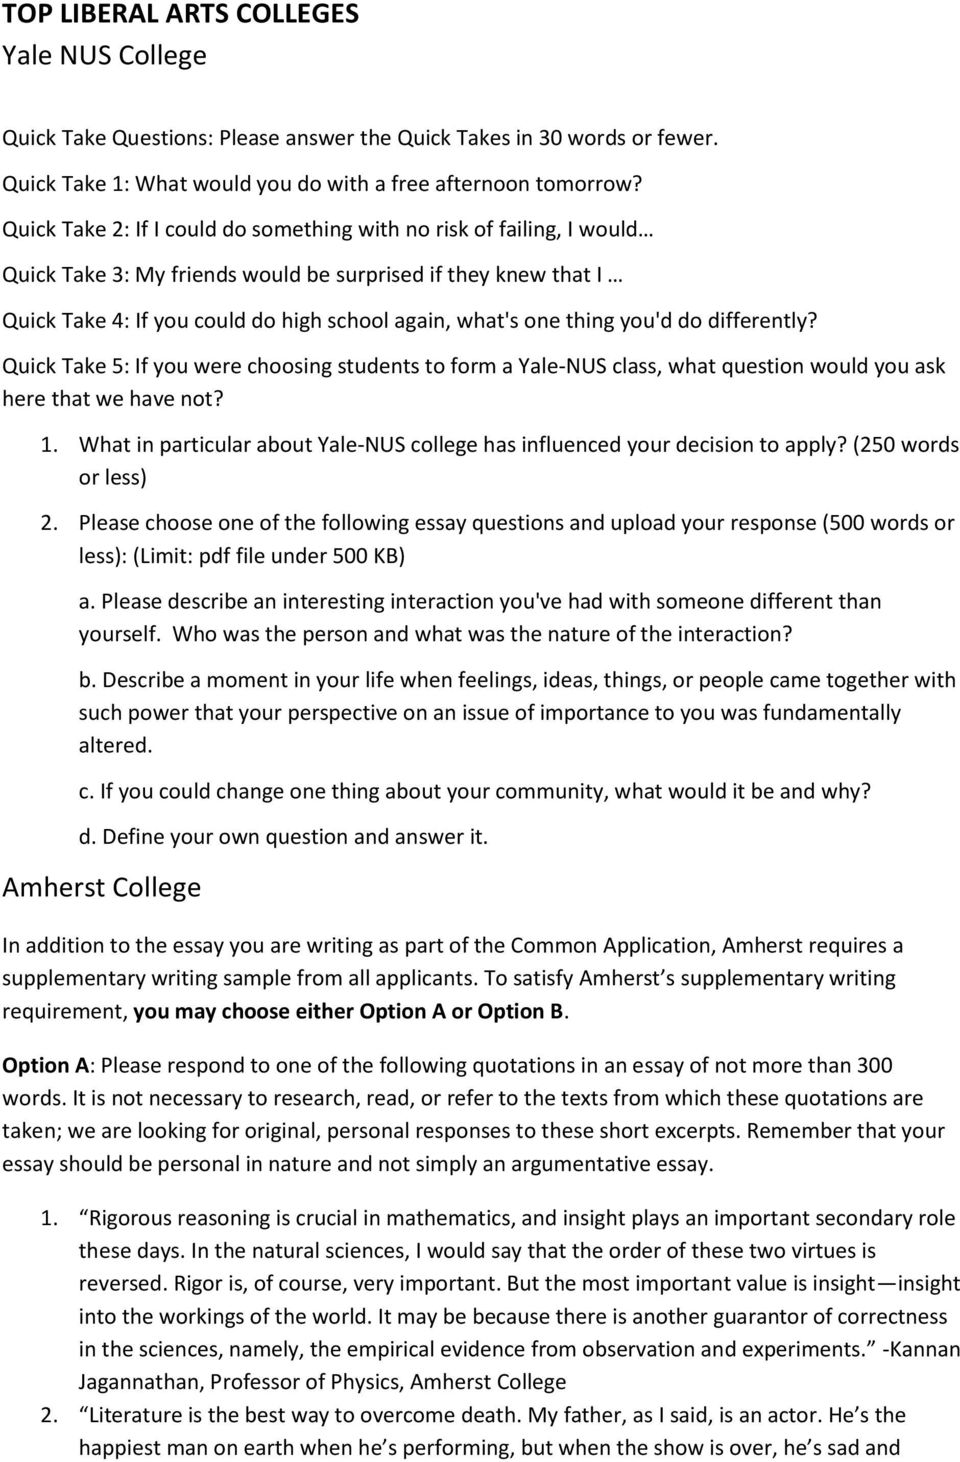 nus application essay mba Nus national university of singapore mba essay tips, mba essay analysis, mba essay editing and application review by top bschool alumni nus mba essay and deadlines.